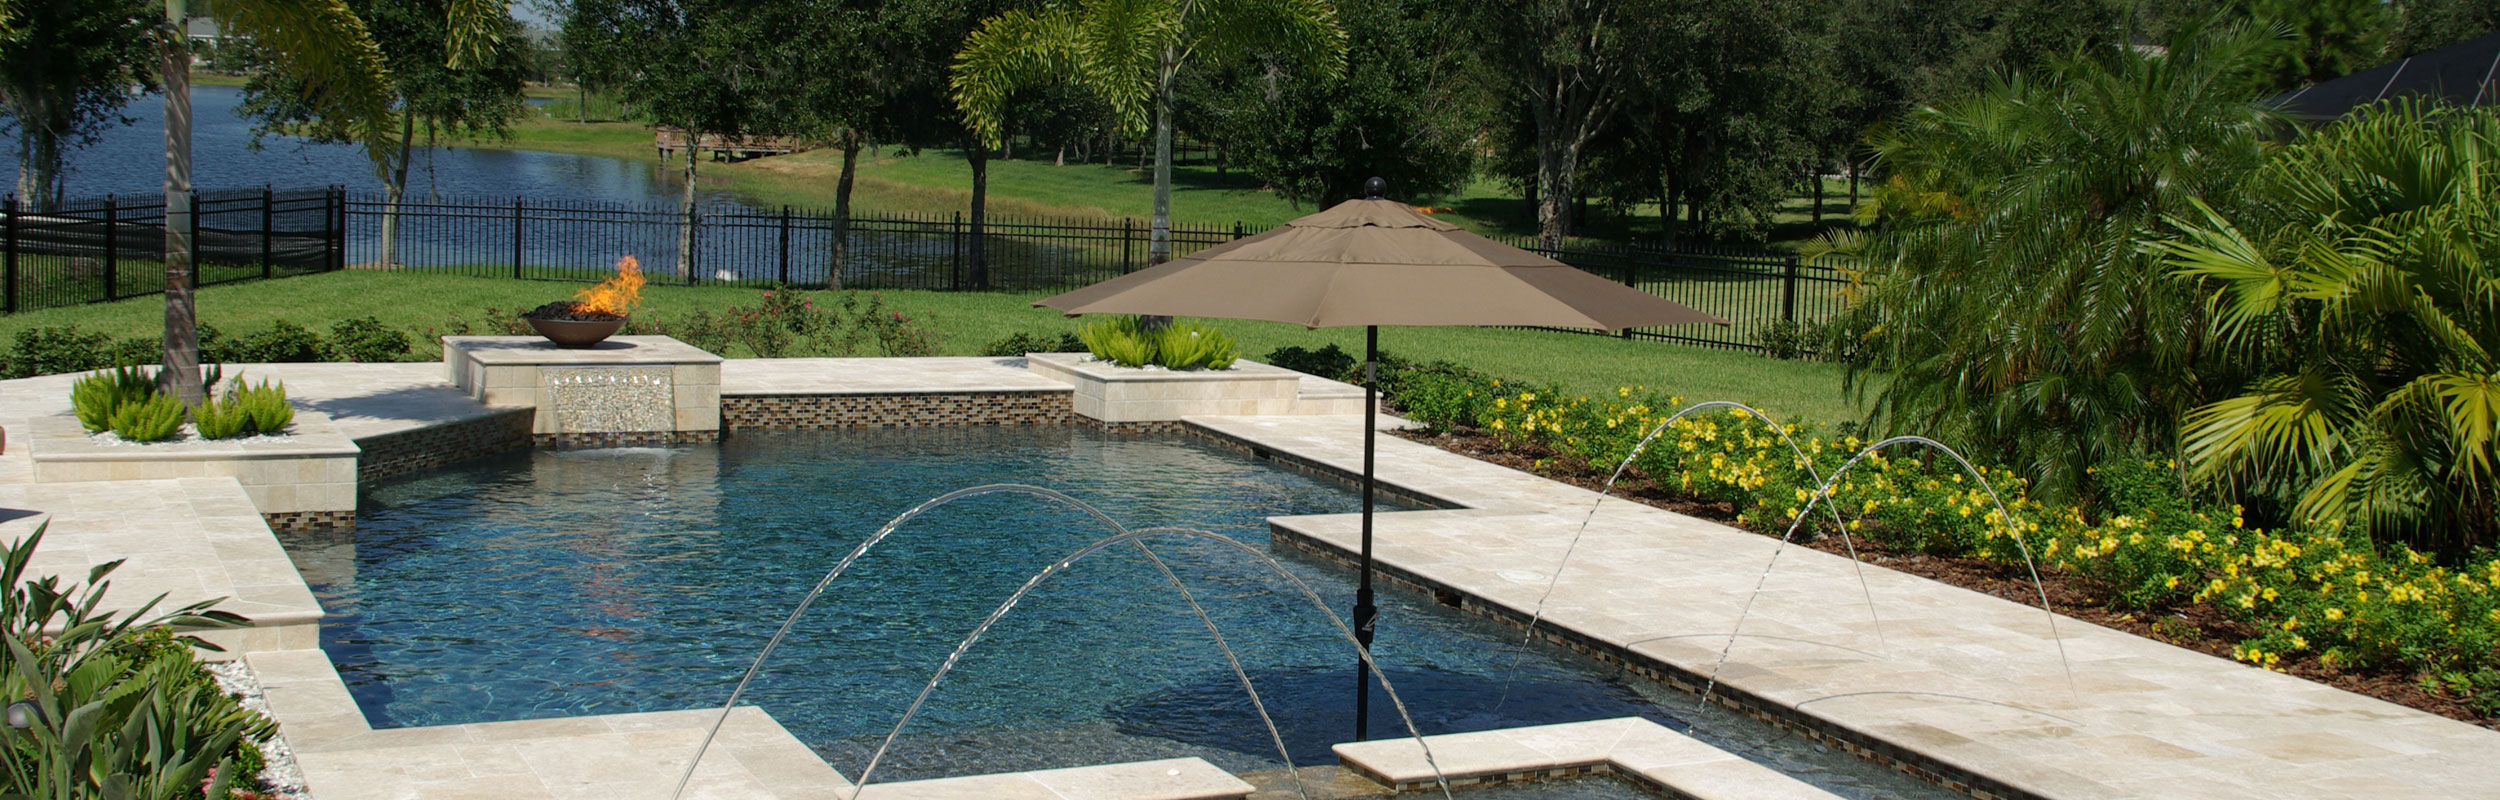 Best custom tampa pool builders quality service and for Top pool builders